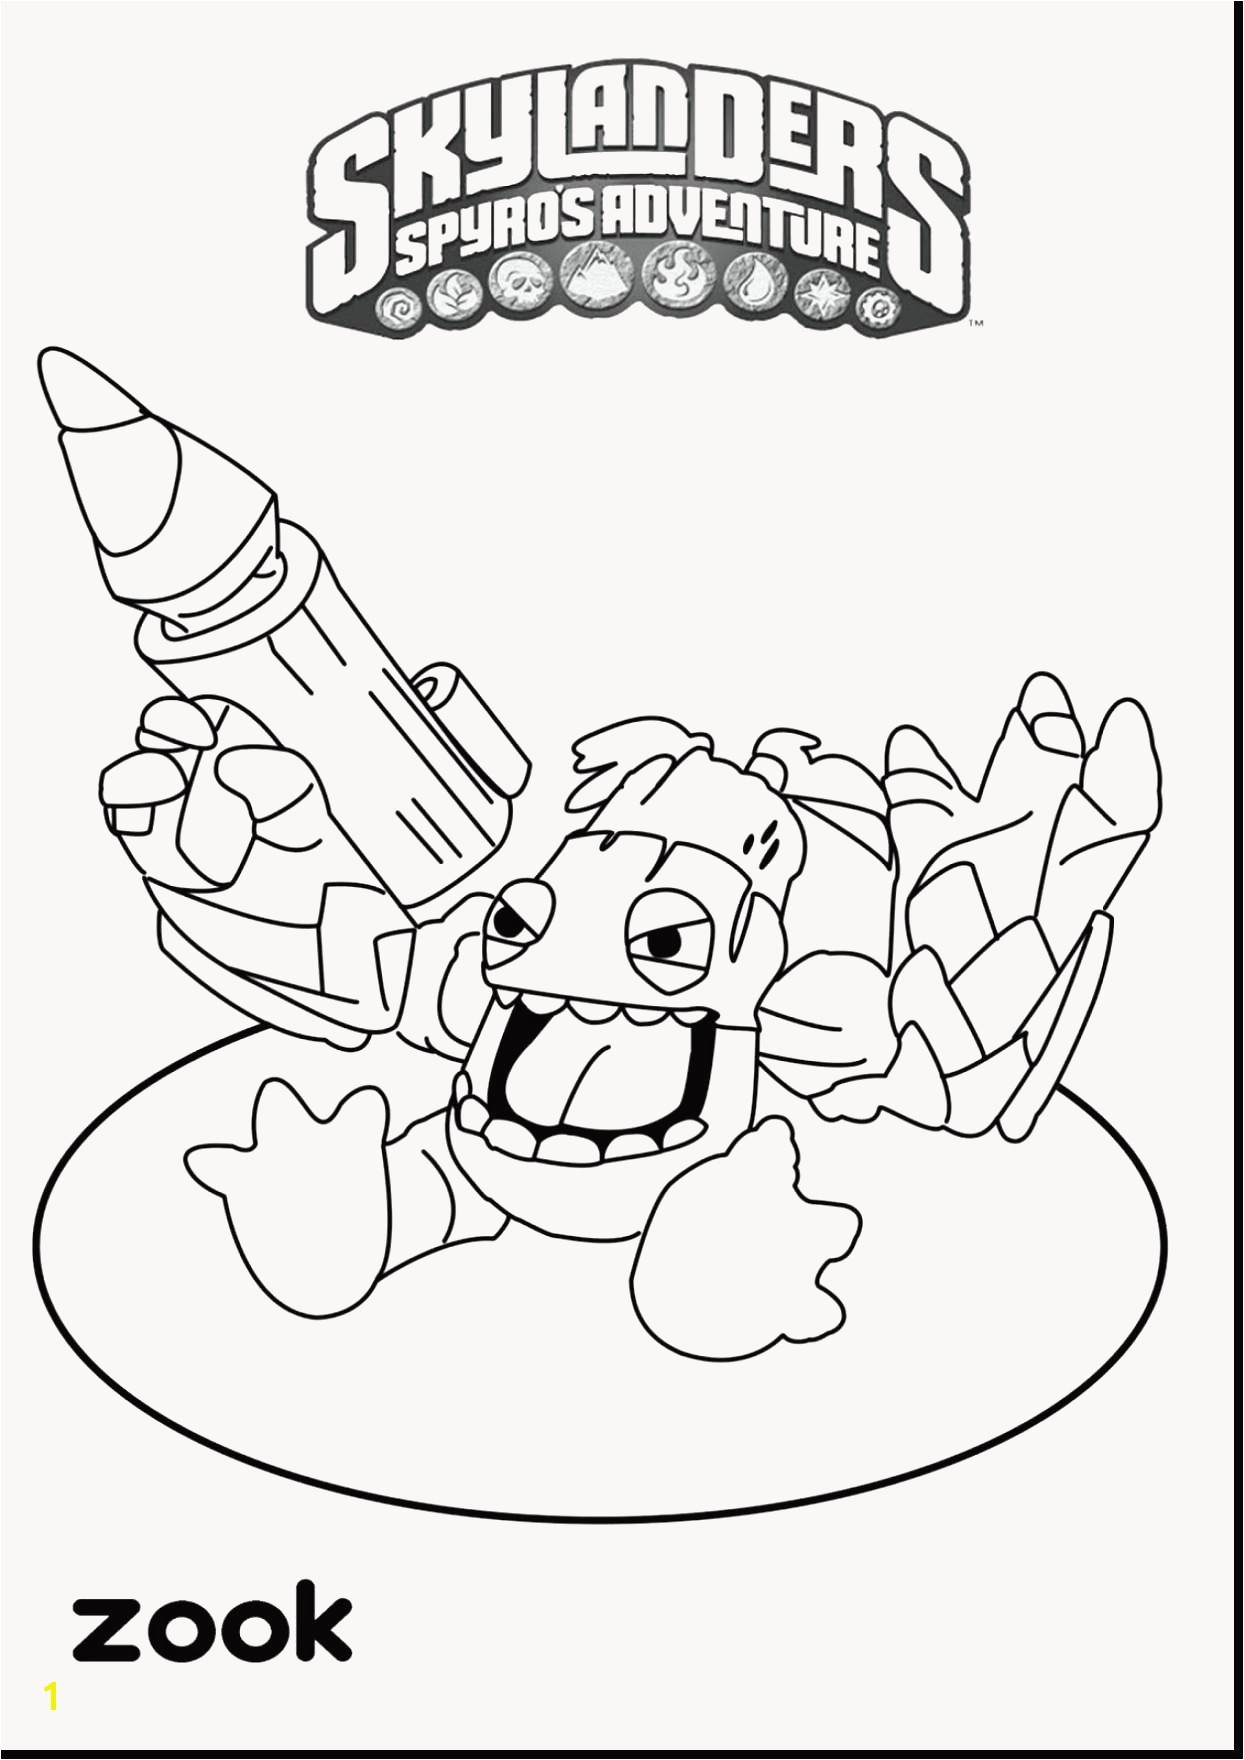 Free Ninja Turtle Coloring Pages Star Wars Color Pages